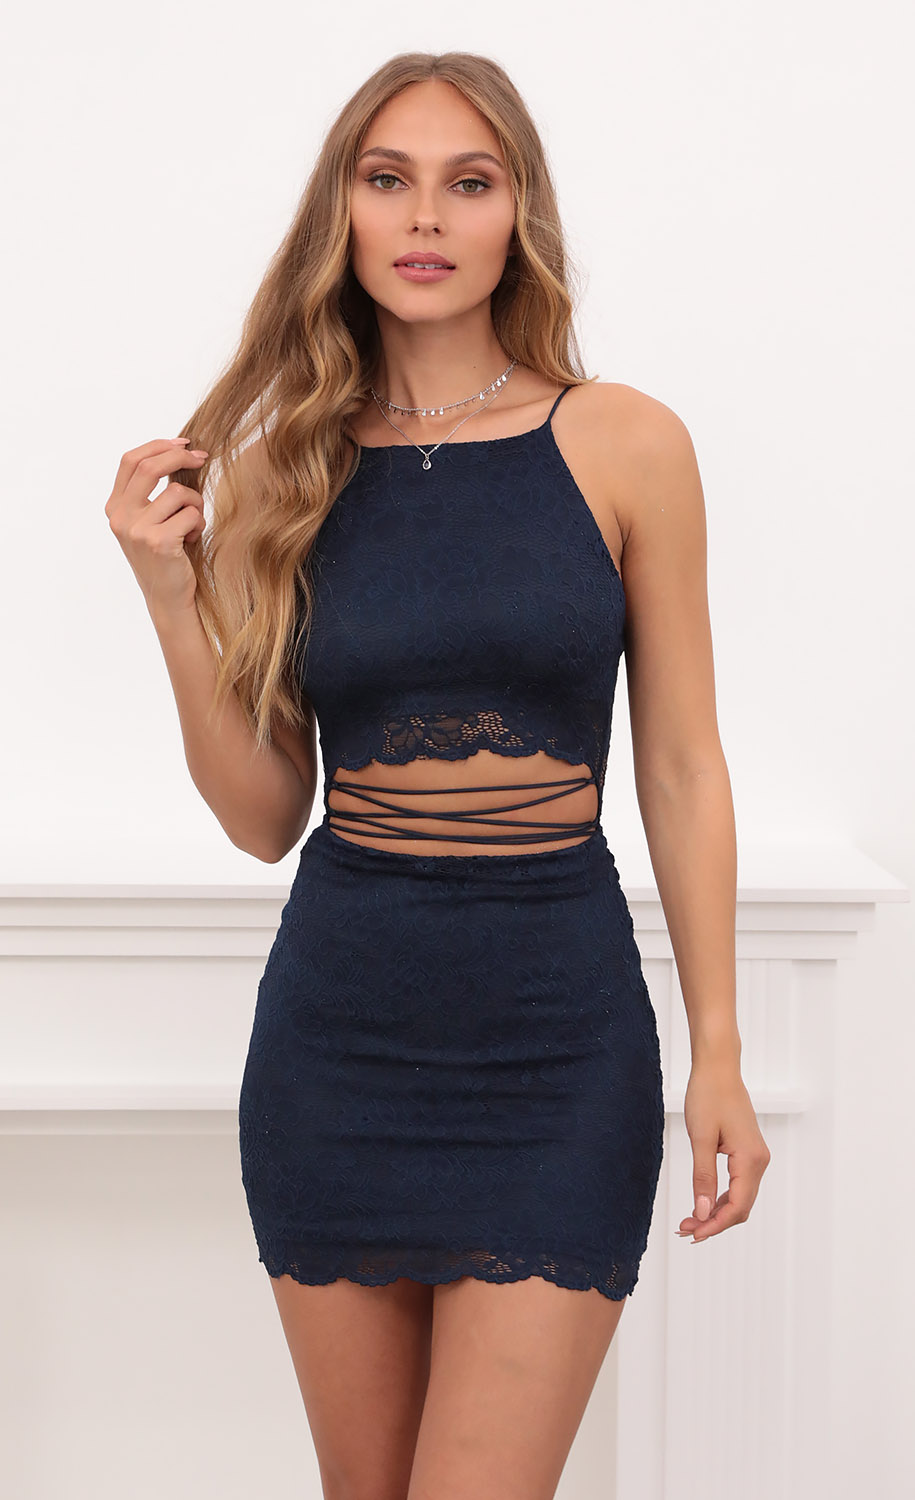 Meghan Halter Wraparound Tied Lace Dress in Navy